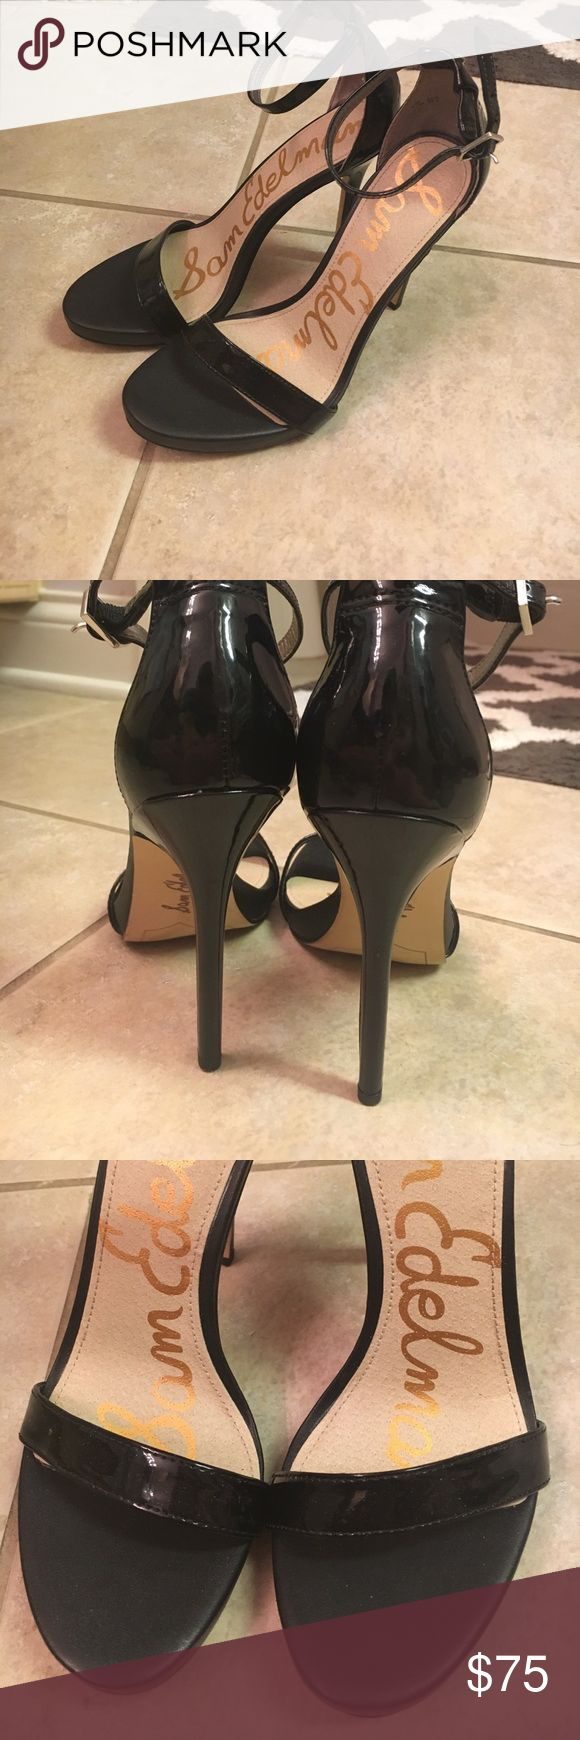 Sam Edelman 6.5 Black Heels Adjustable Strap that attaches around ankle! And one around the toes but not adjustable. Only worn twice. Great Condition with no indentations around the toes. Bottoms were scraped to prevent slipping on carpet. Price is Negotiable Sam Edelman Shoes Heels